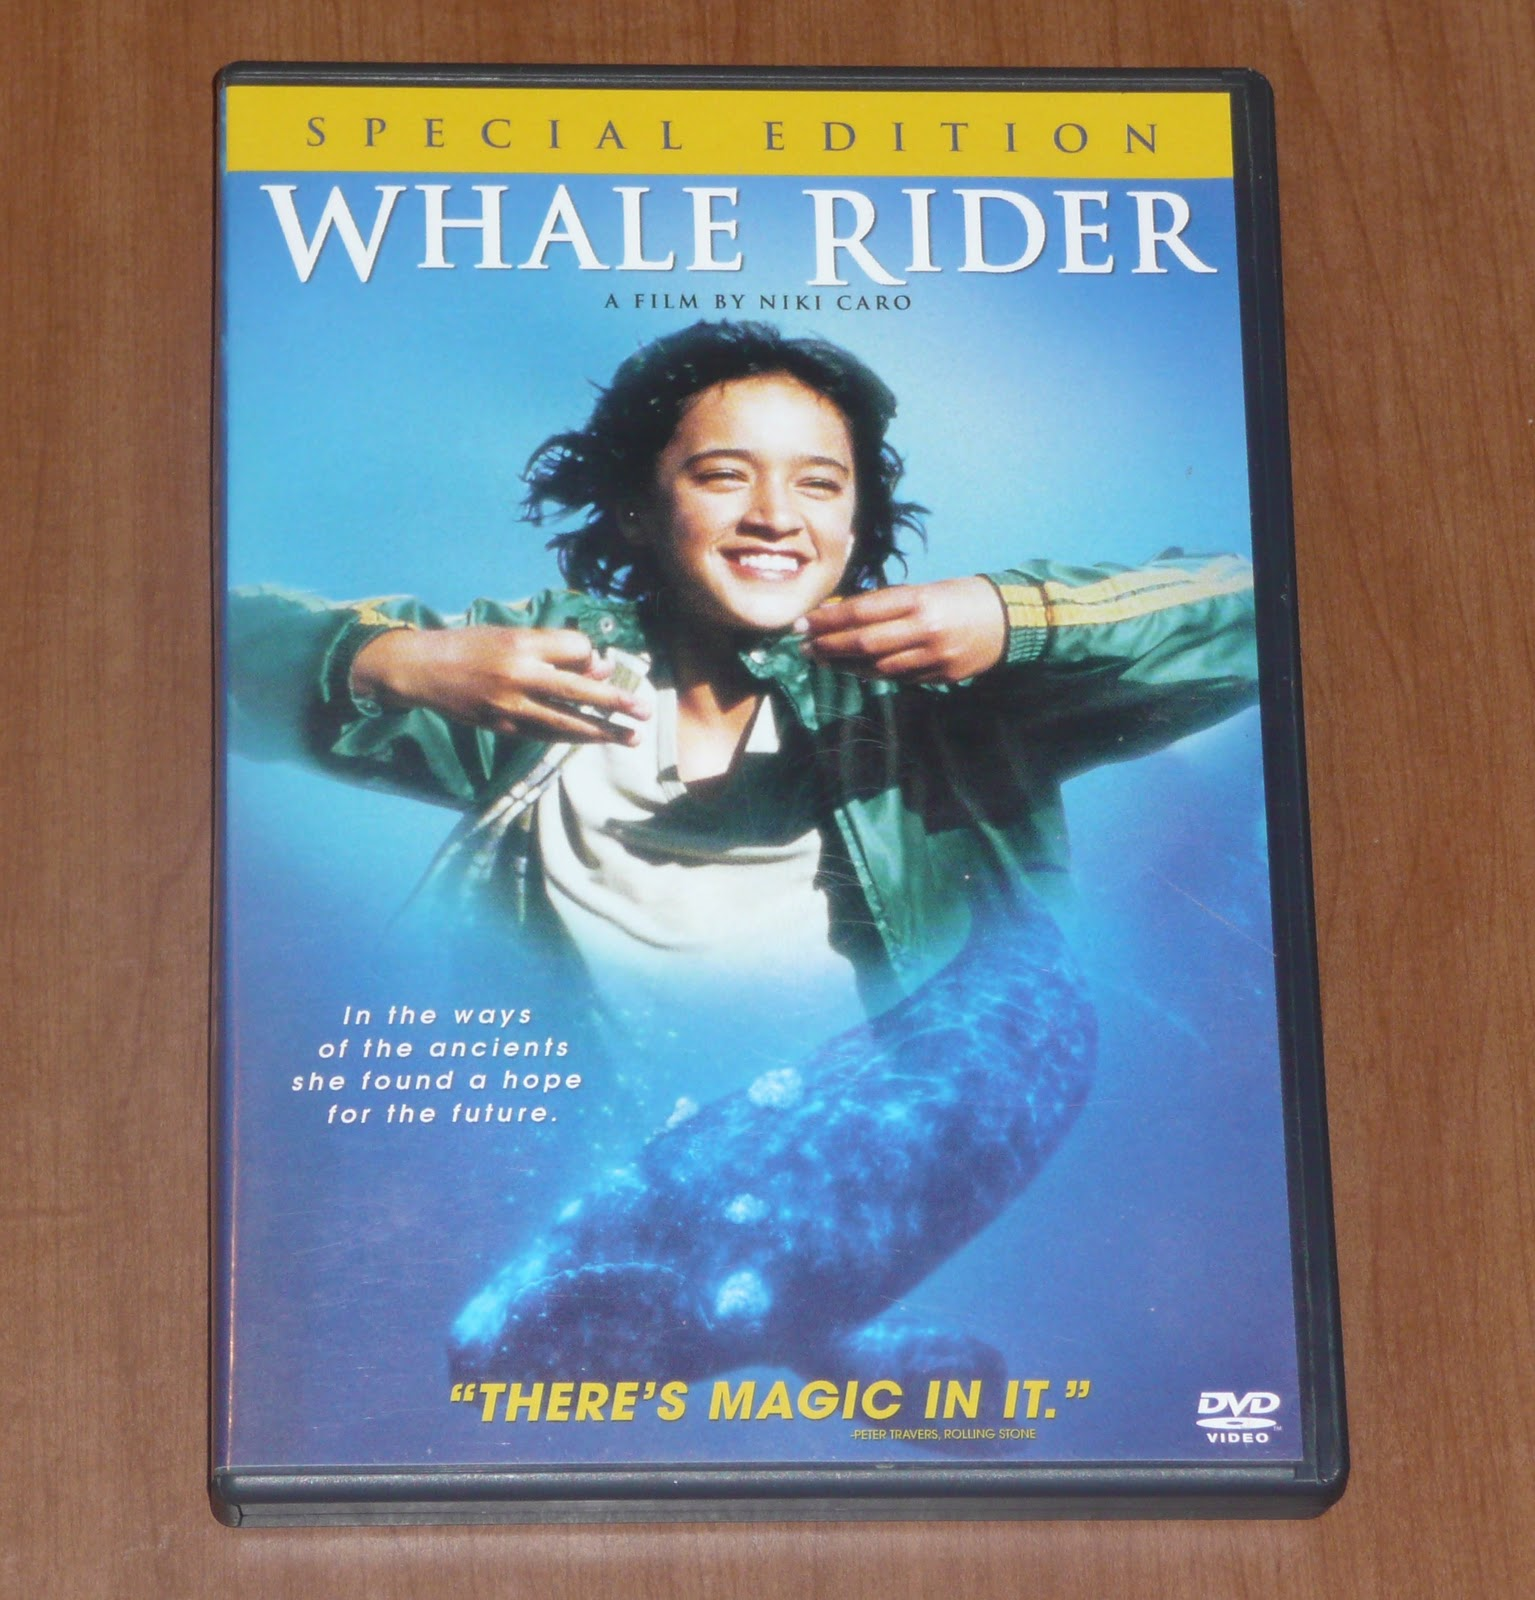 an analysis of the whale rider by niki caro